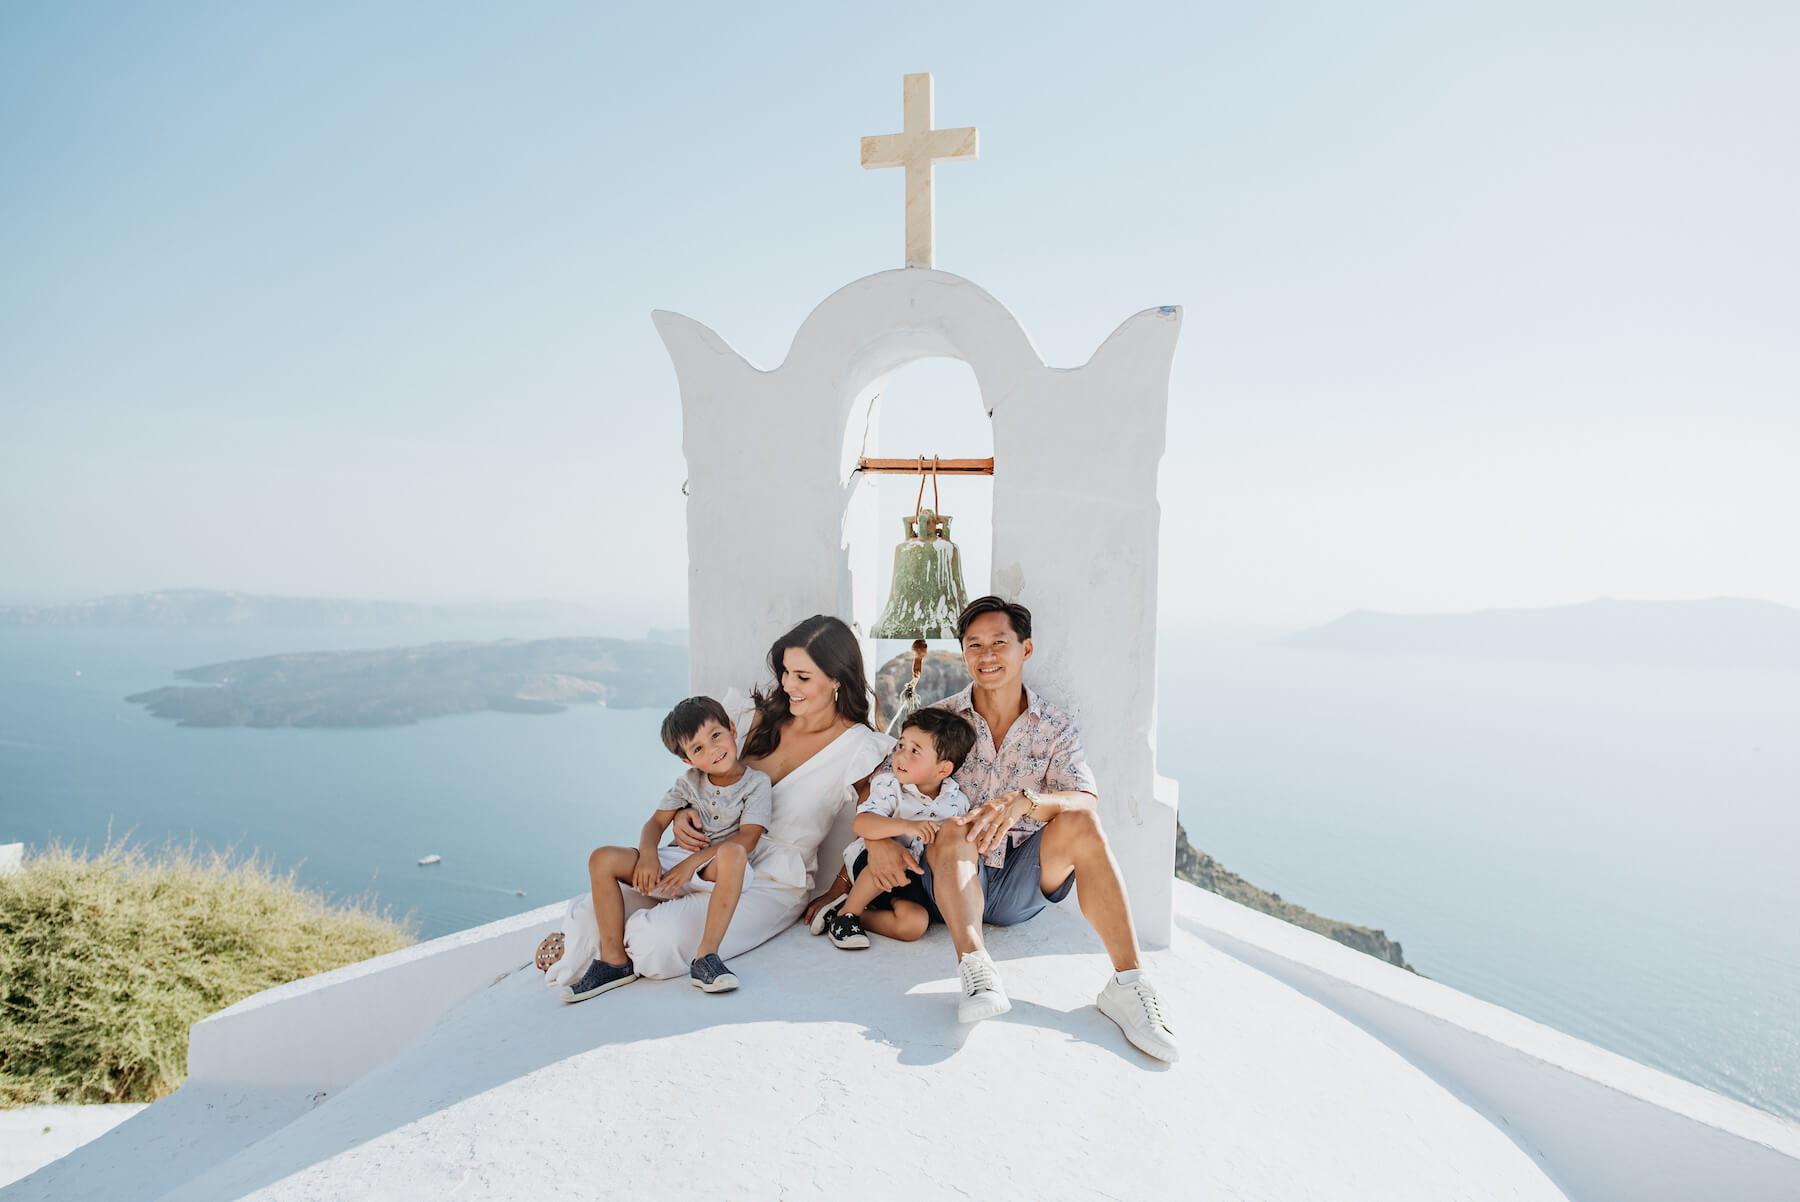 A mother, father and two young boys smile while sitting atop an iconic white church rooftop in Santorini, Greece.